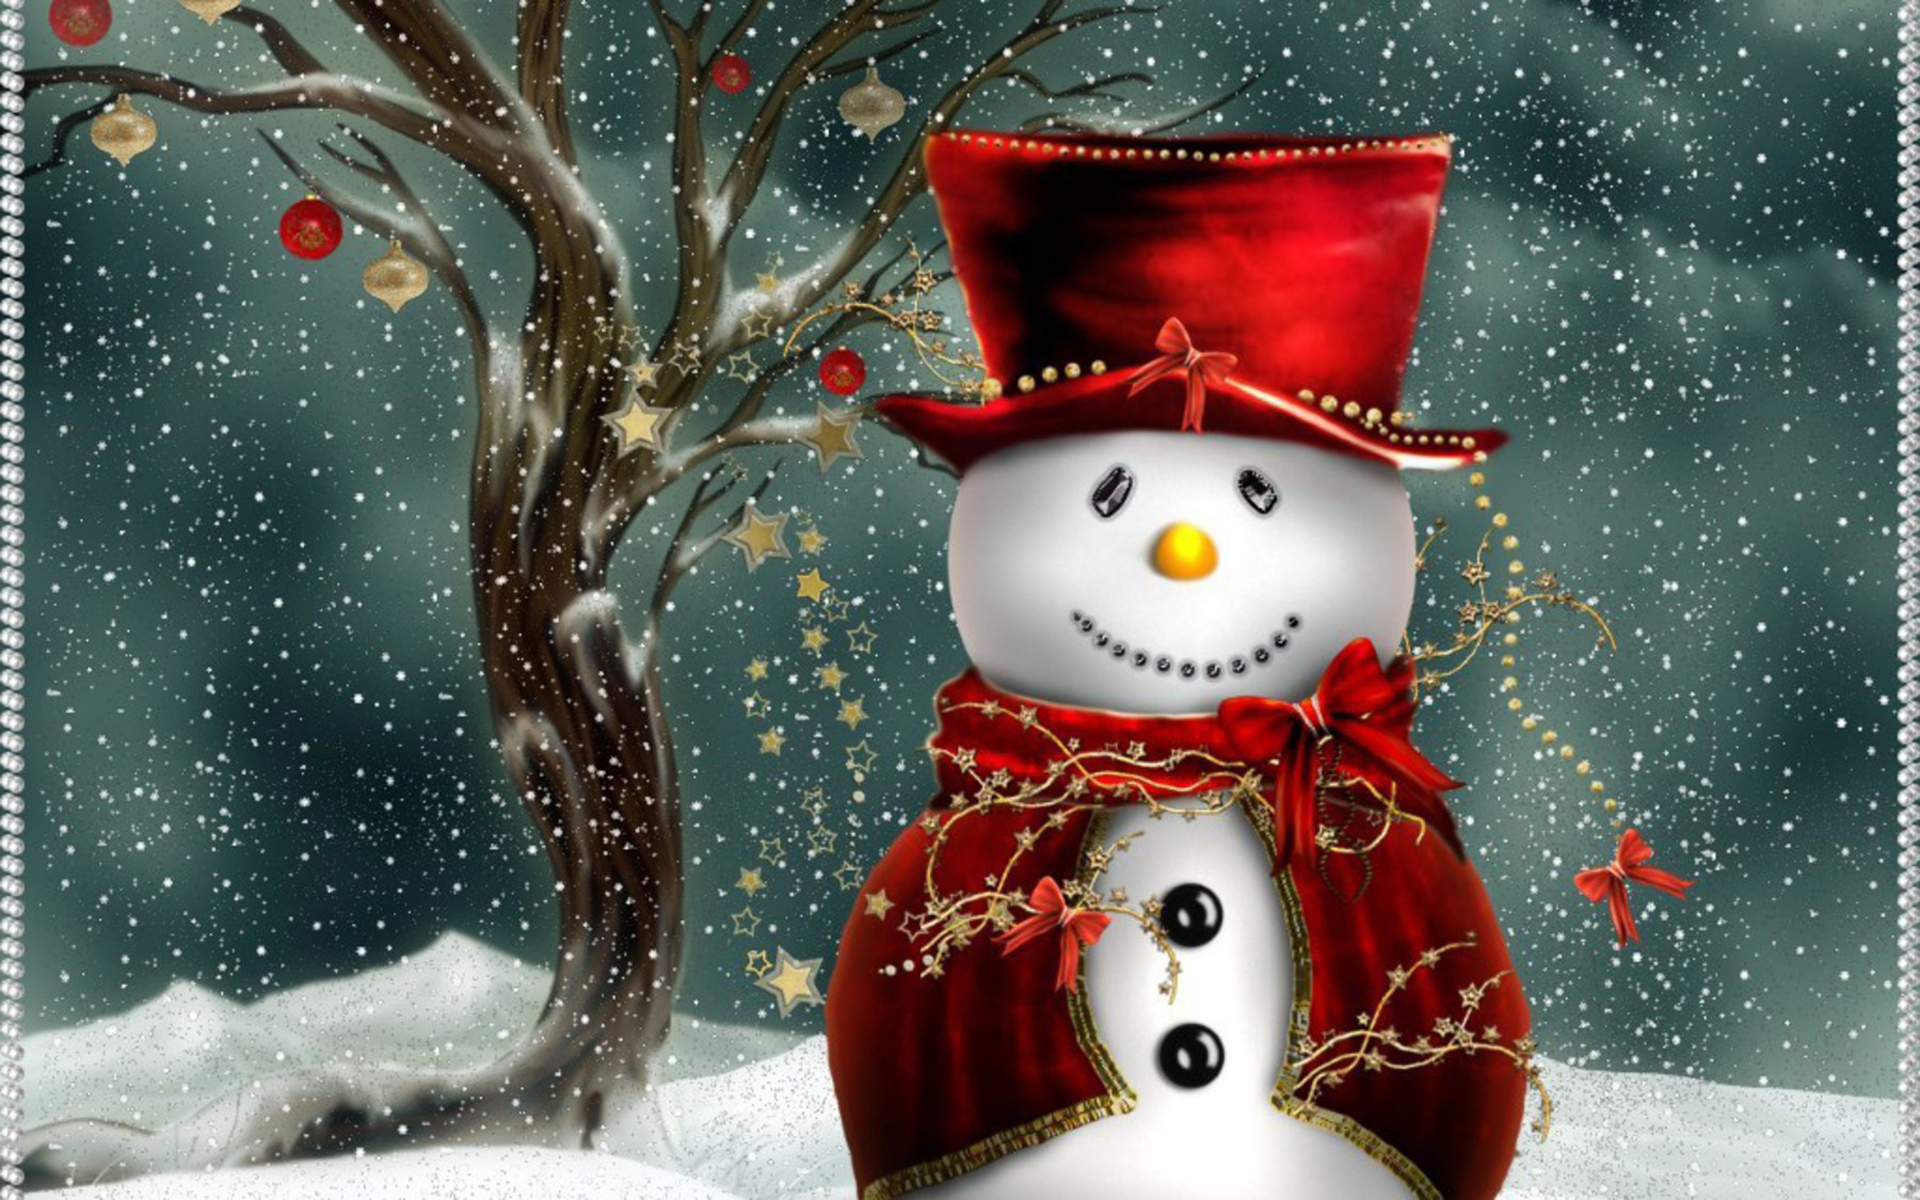 Desktop wallpapers holiday free - Free Desktop Wallpaper Of Cute Christmas Snowman Free Computer Desktop